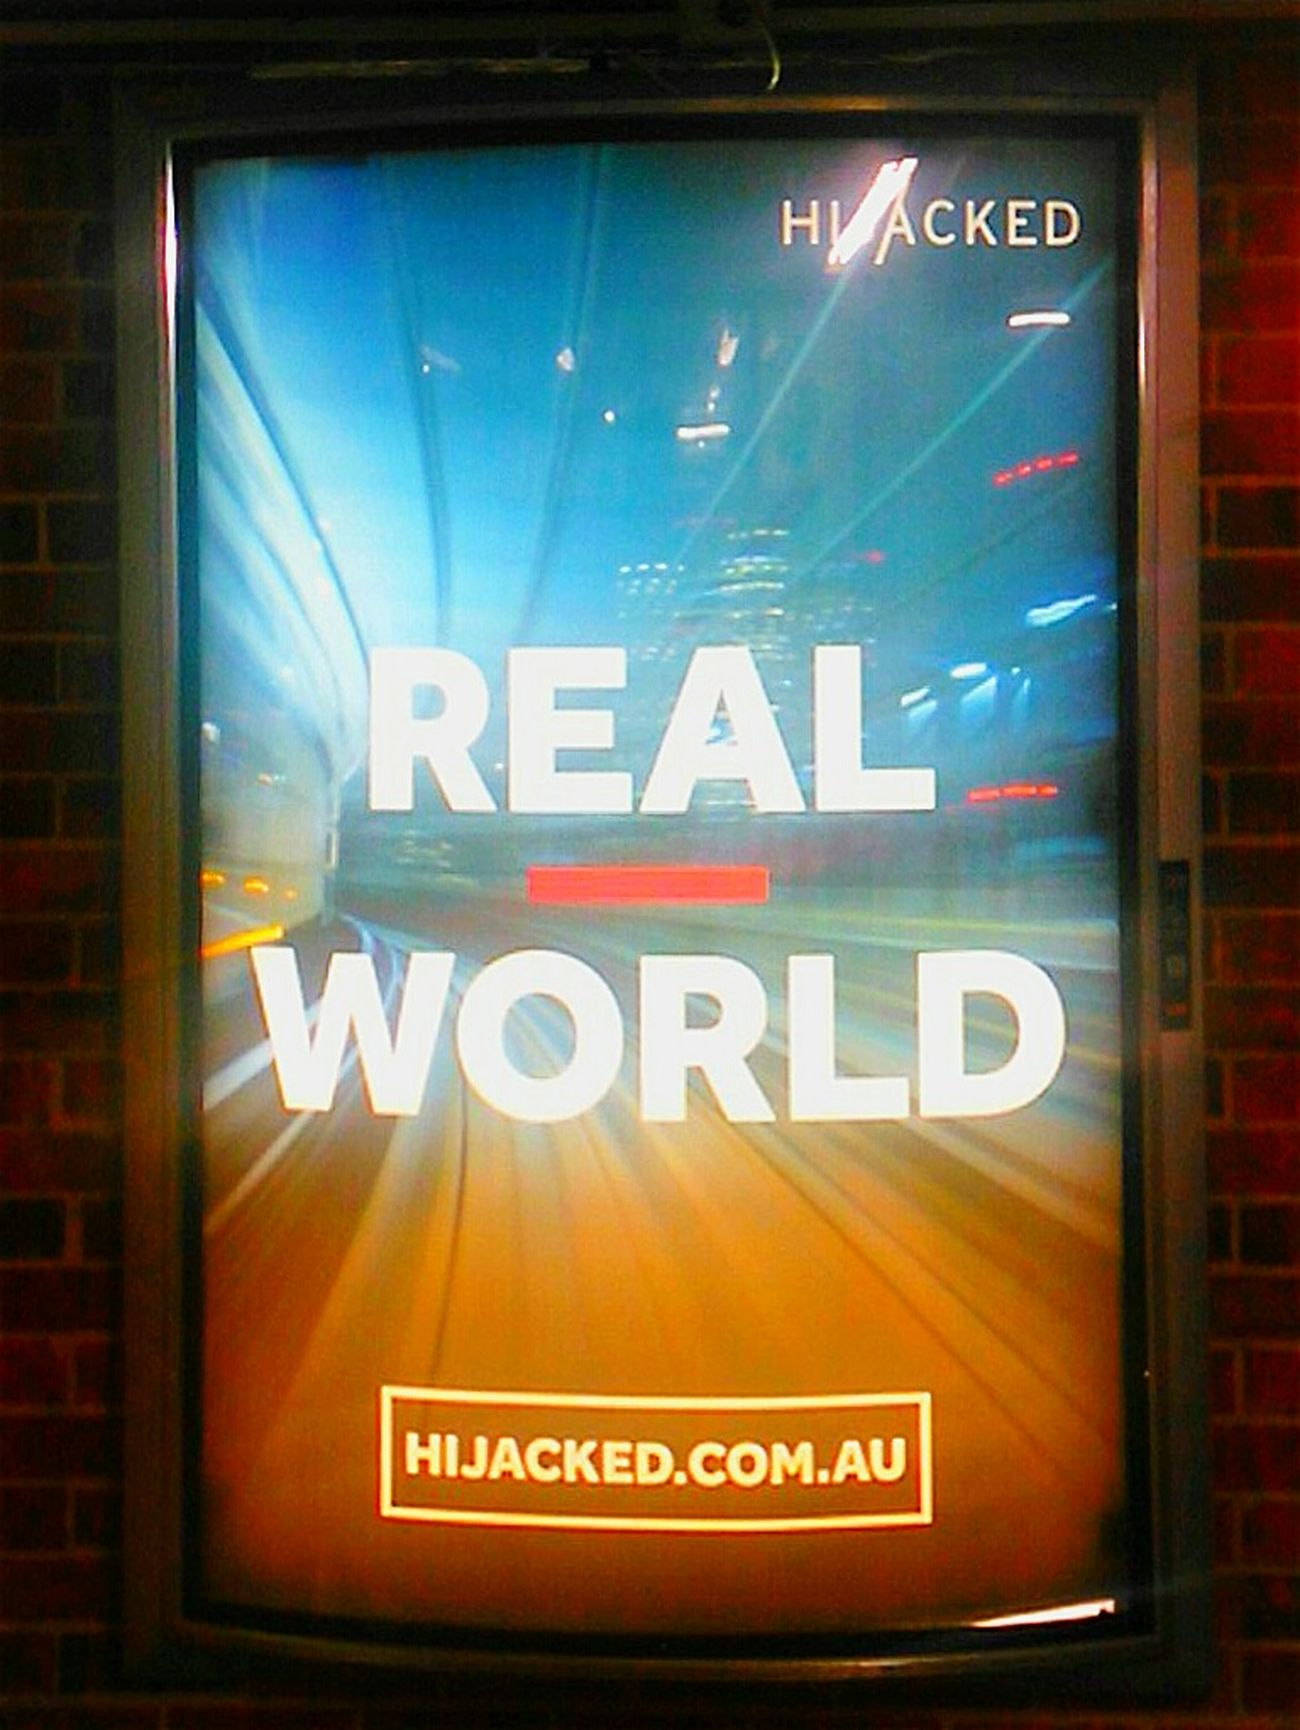 Sign Real World Highjacked HIJACKED.COM.AU Billboard Signs Highjack SignSignEverywhereASign Signage Signporn SignsSignsAndMoreSigns Signstalkers Signs, Signs, & More Signs Sign, Sign, Everywhere A Sign Signs_collection Signs Signs Everywhere Signs Big Signs Illuminated Signs Streetphotography Street Photography